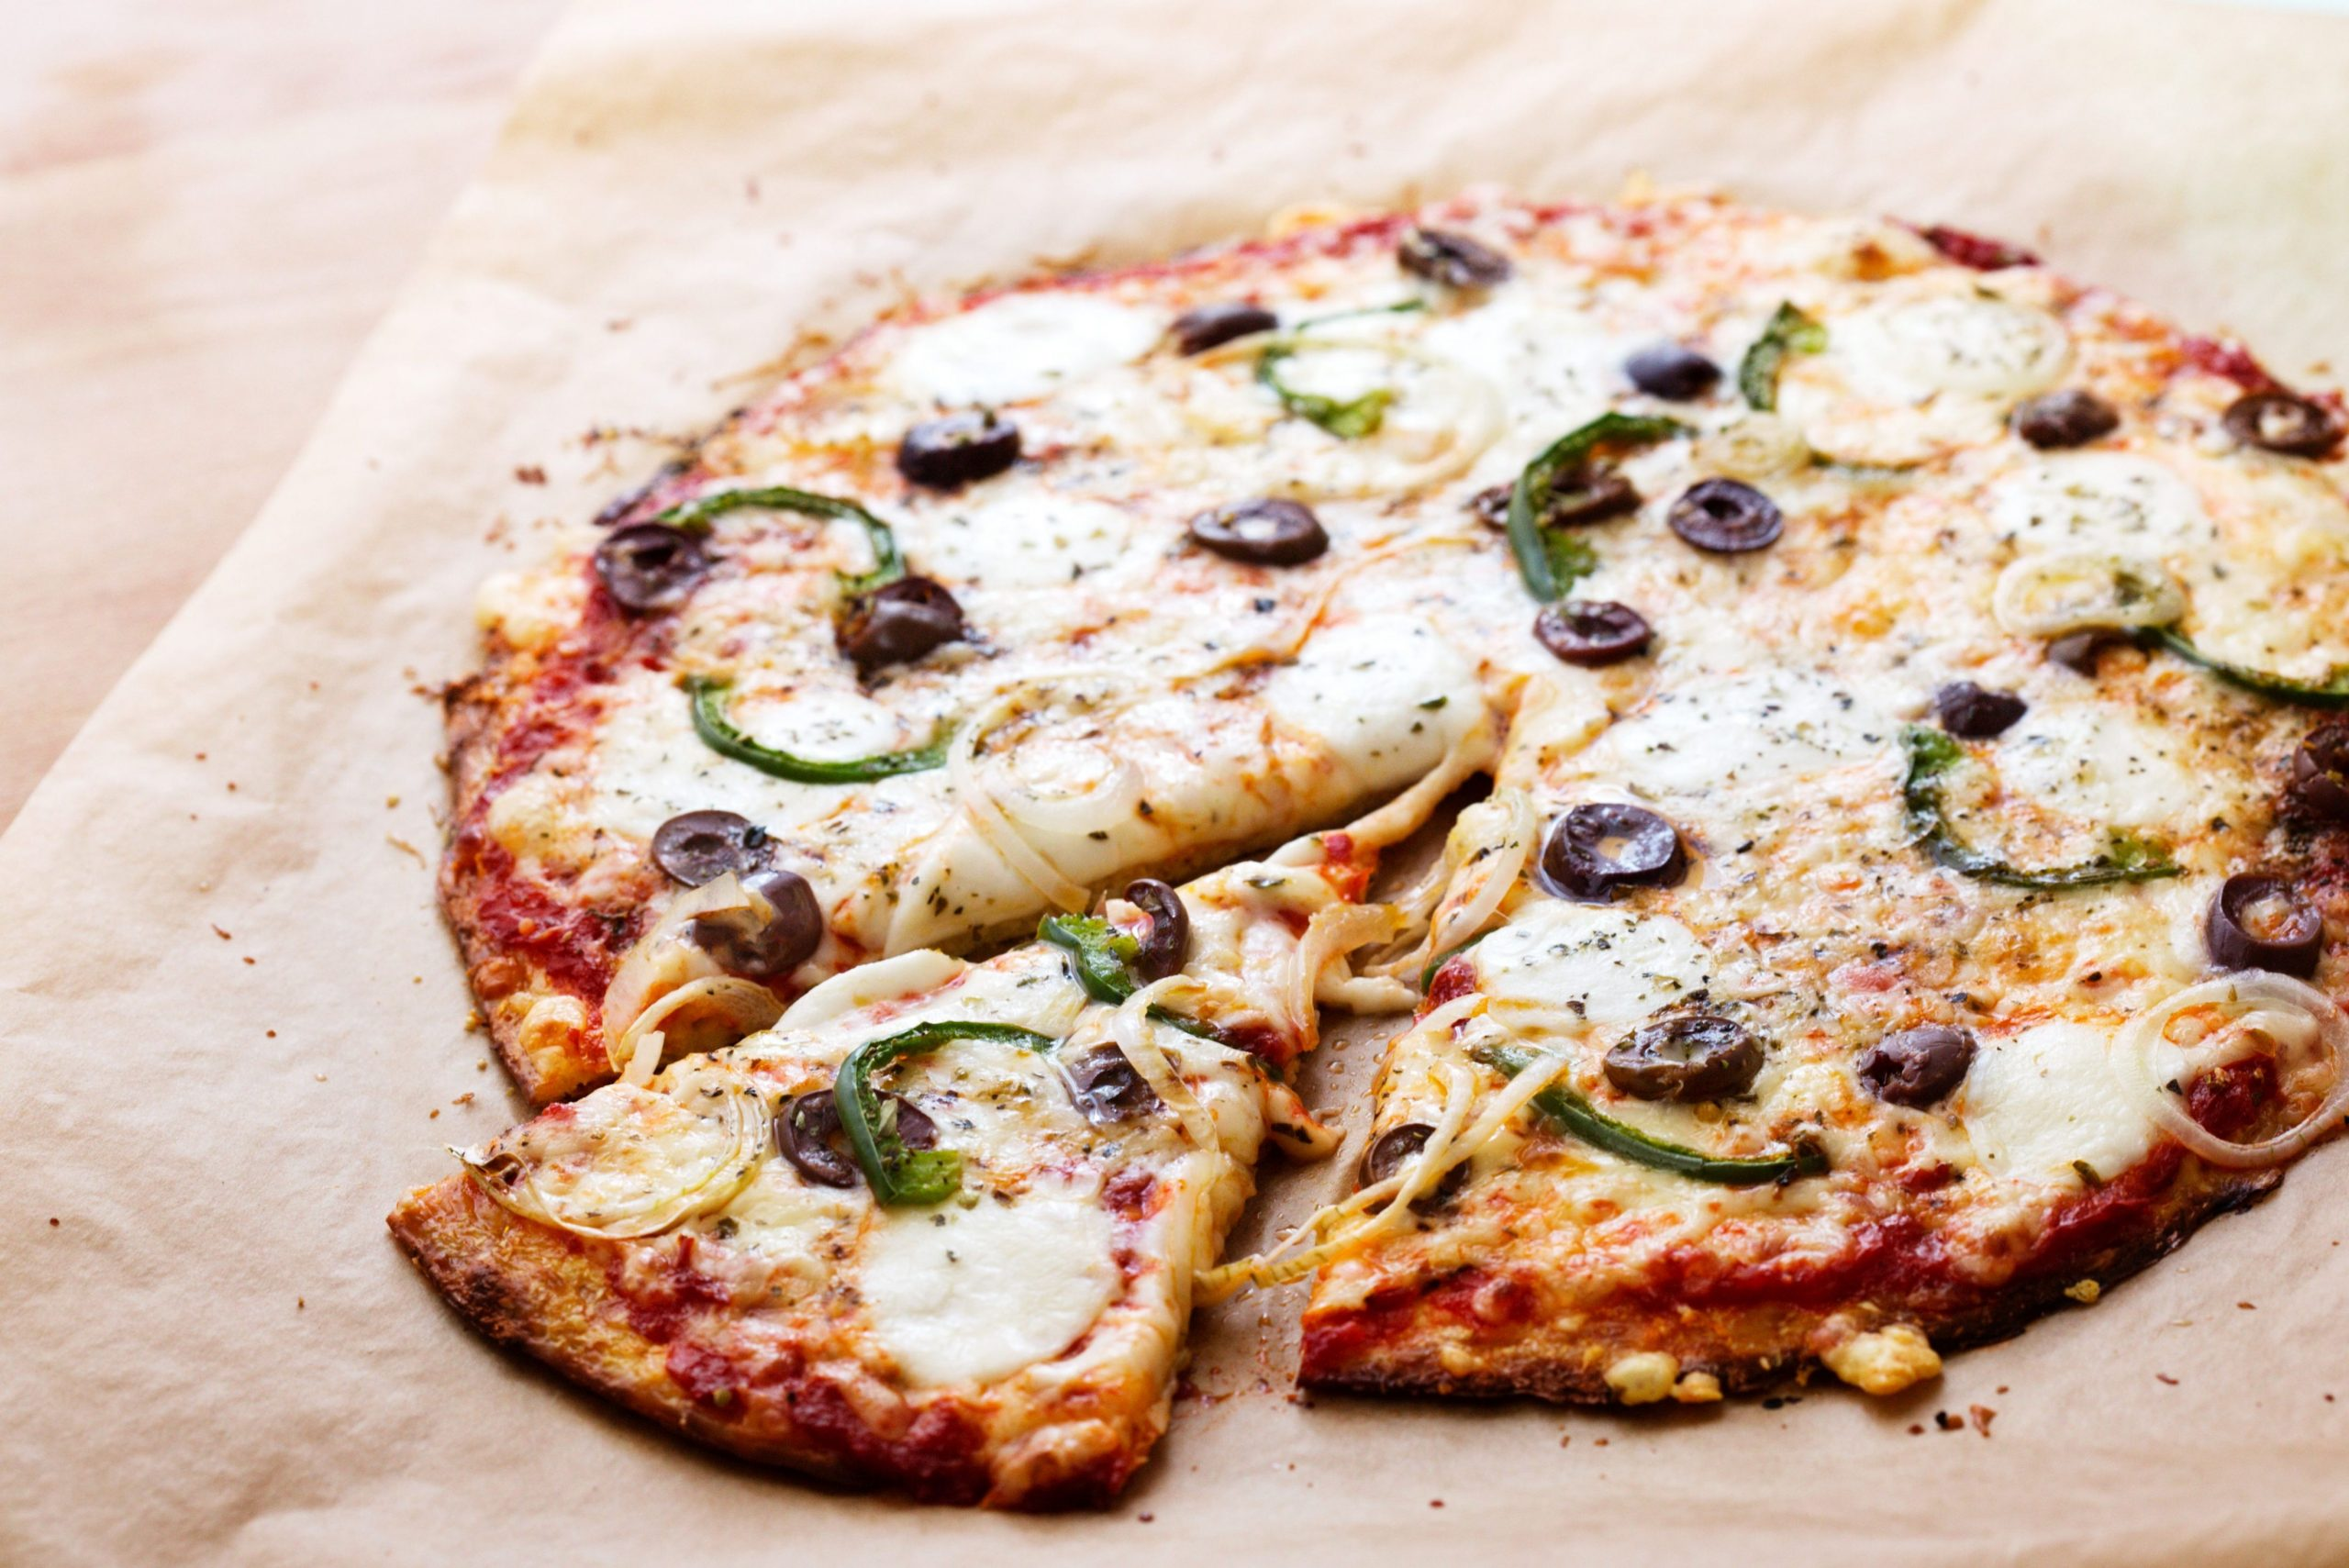 Low-carb cauliflower pizza with green peppers and olives